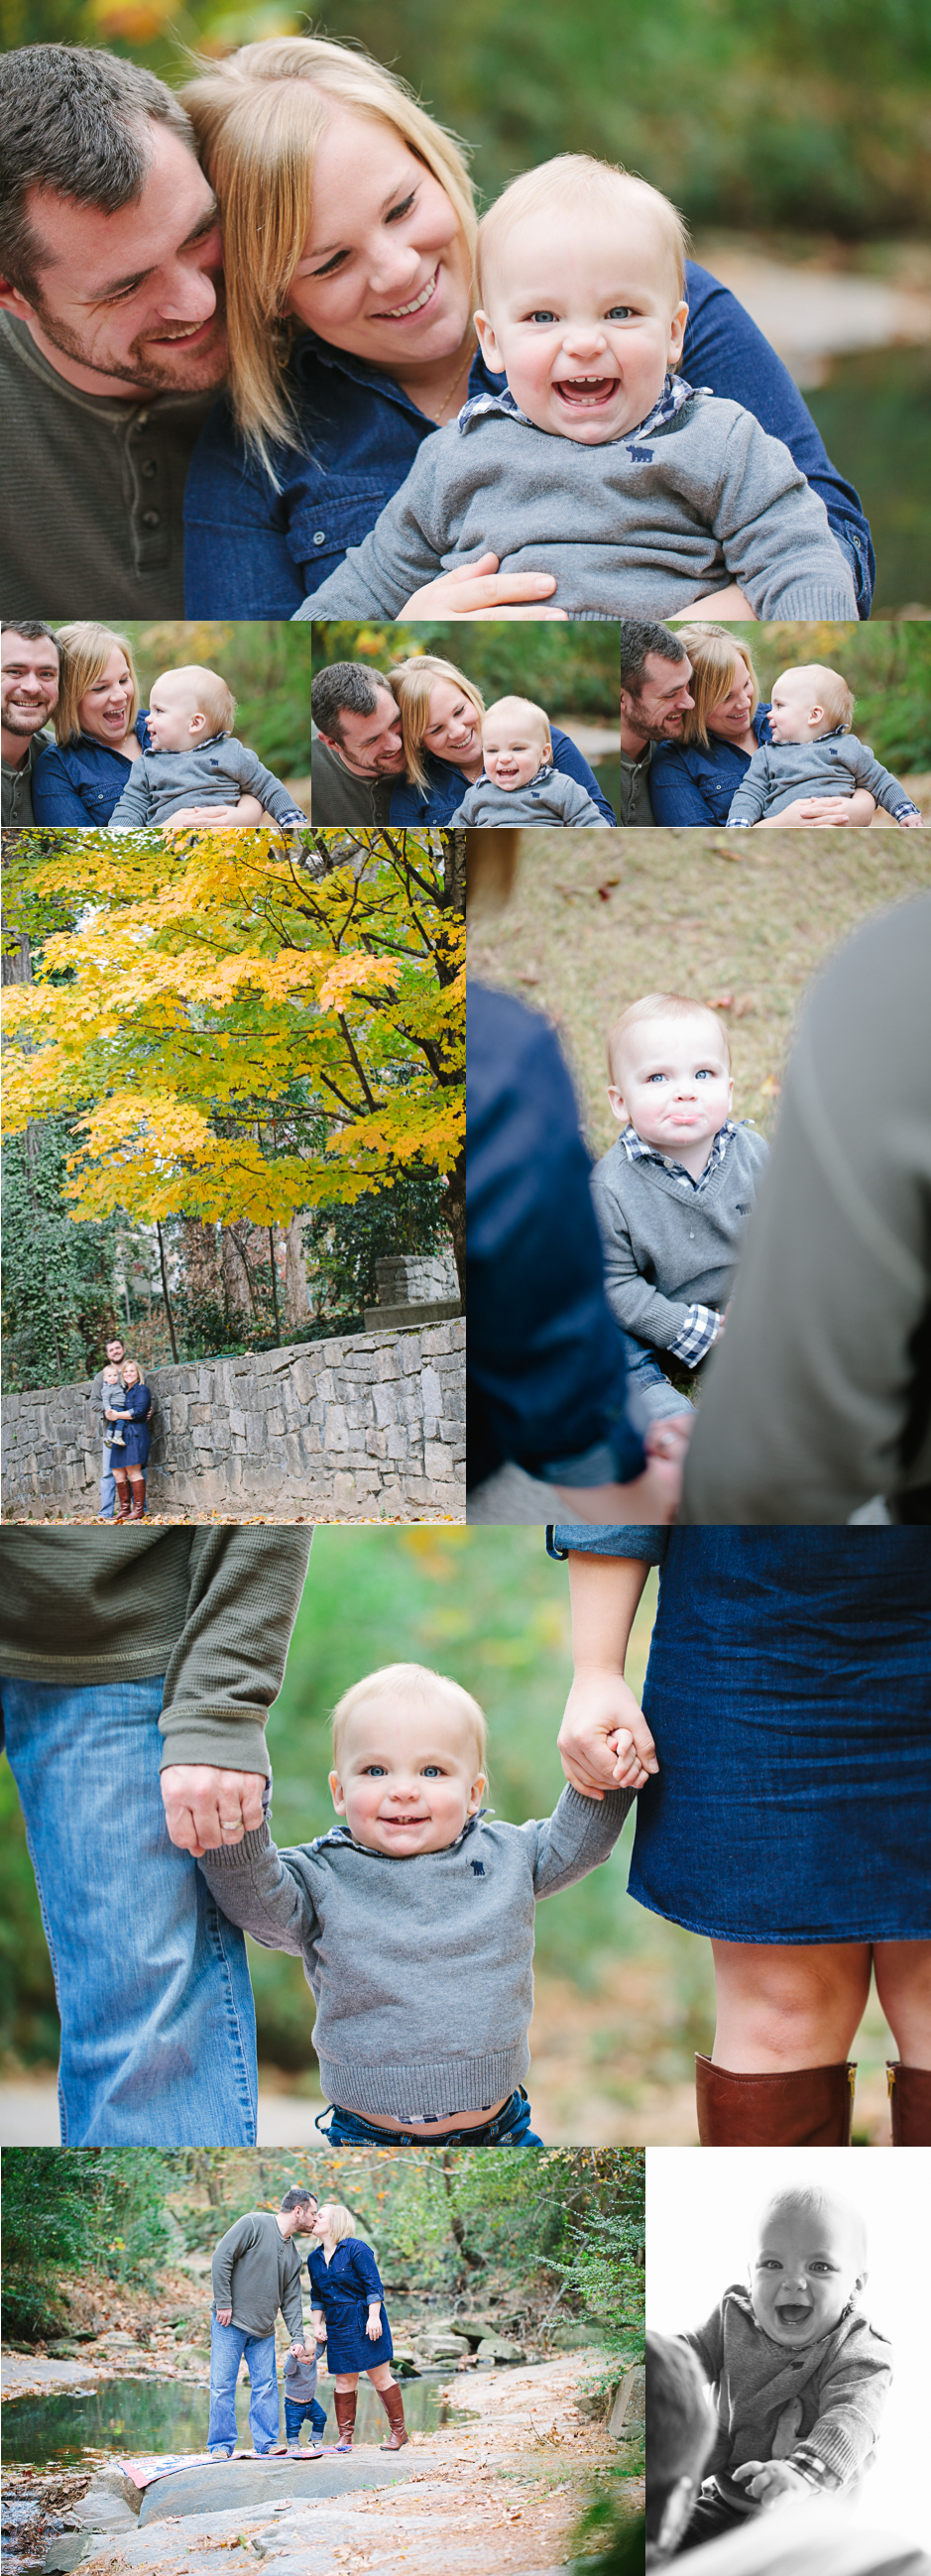 FL20141116 Harrison_OneYear_Blog-1